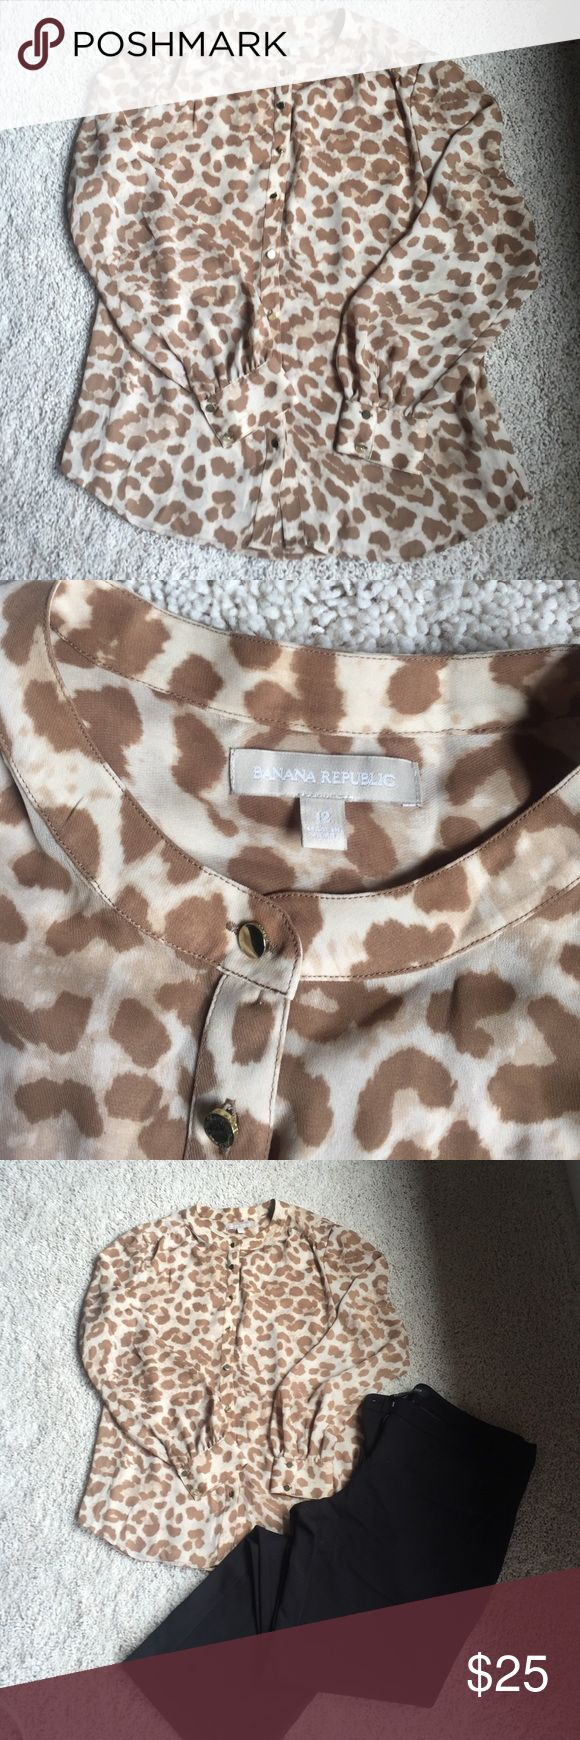 Banana Republic animal print top Such a cute animal print top.  So mad it's too big on me now!  100% polyester.  Excellent used condition. Banana Republic Tops Blouses